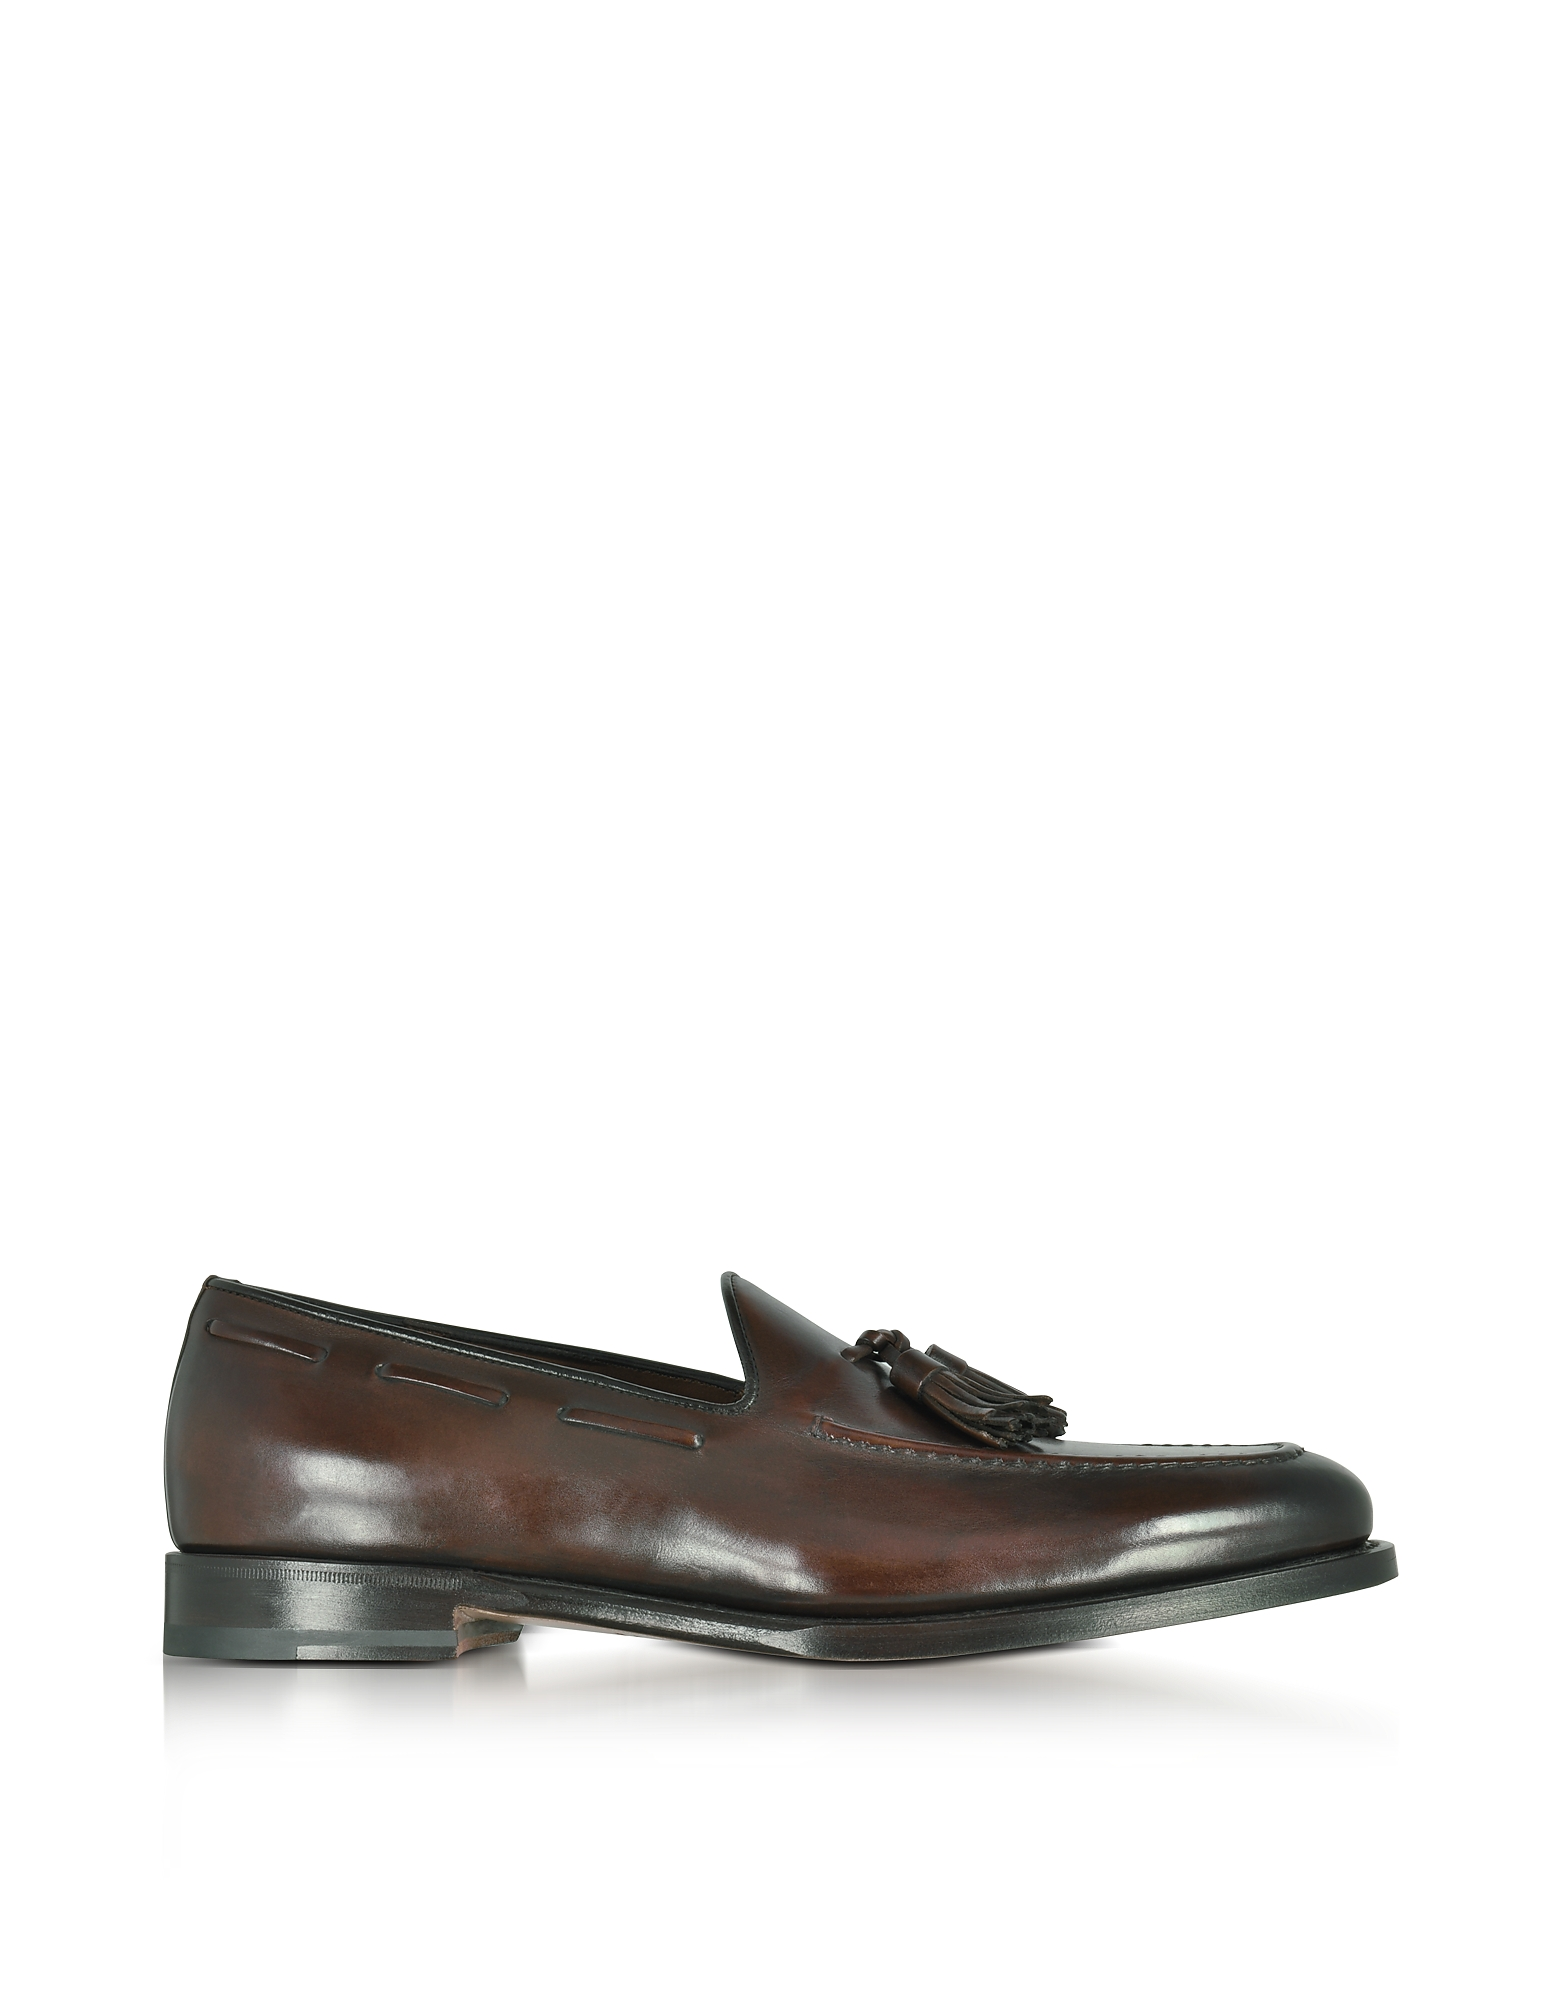 Santoni Shoes, Wilson Dark Brown Leather Loafer Shoes w/Tassels